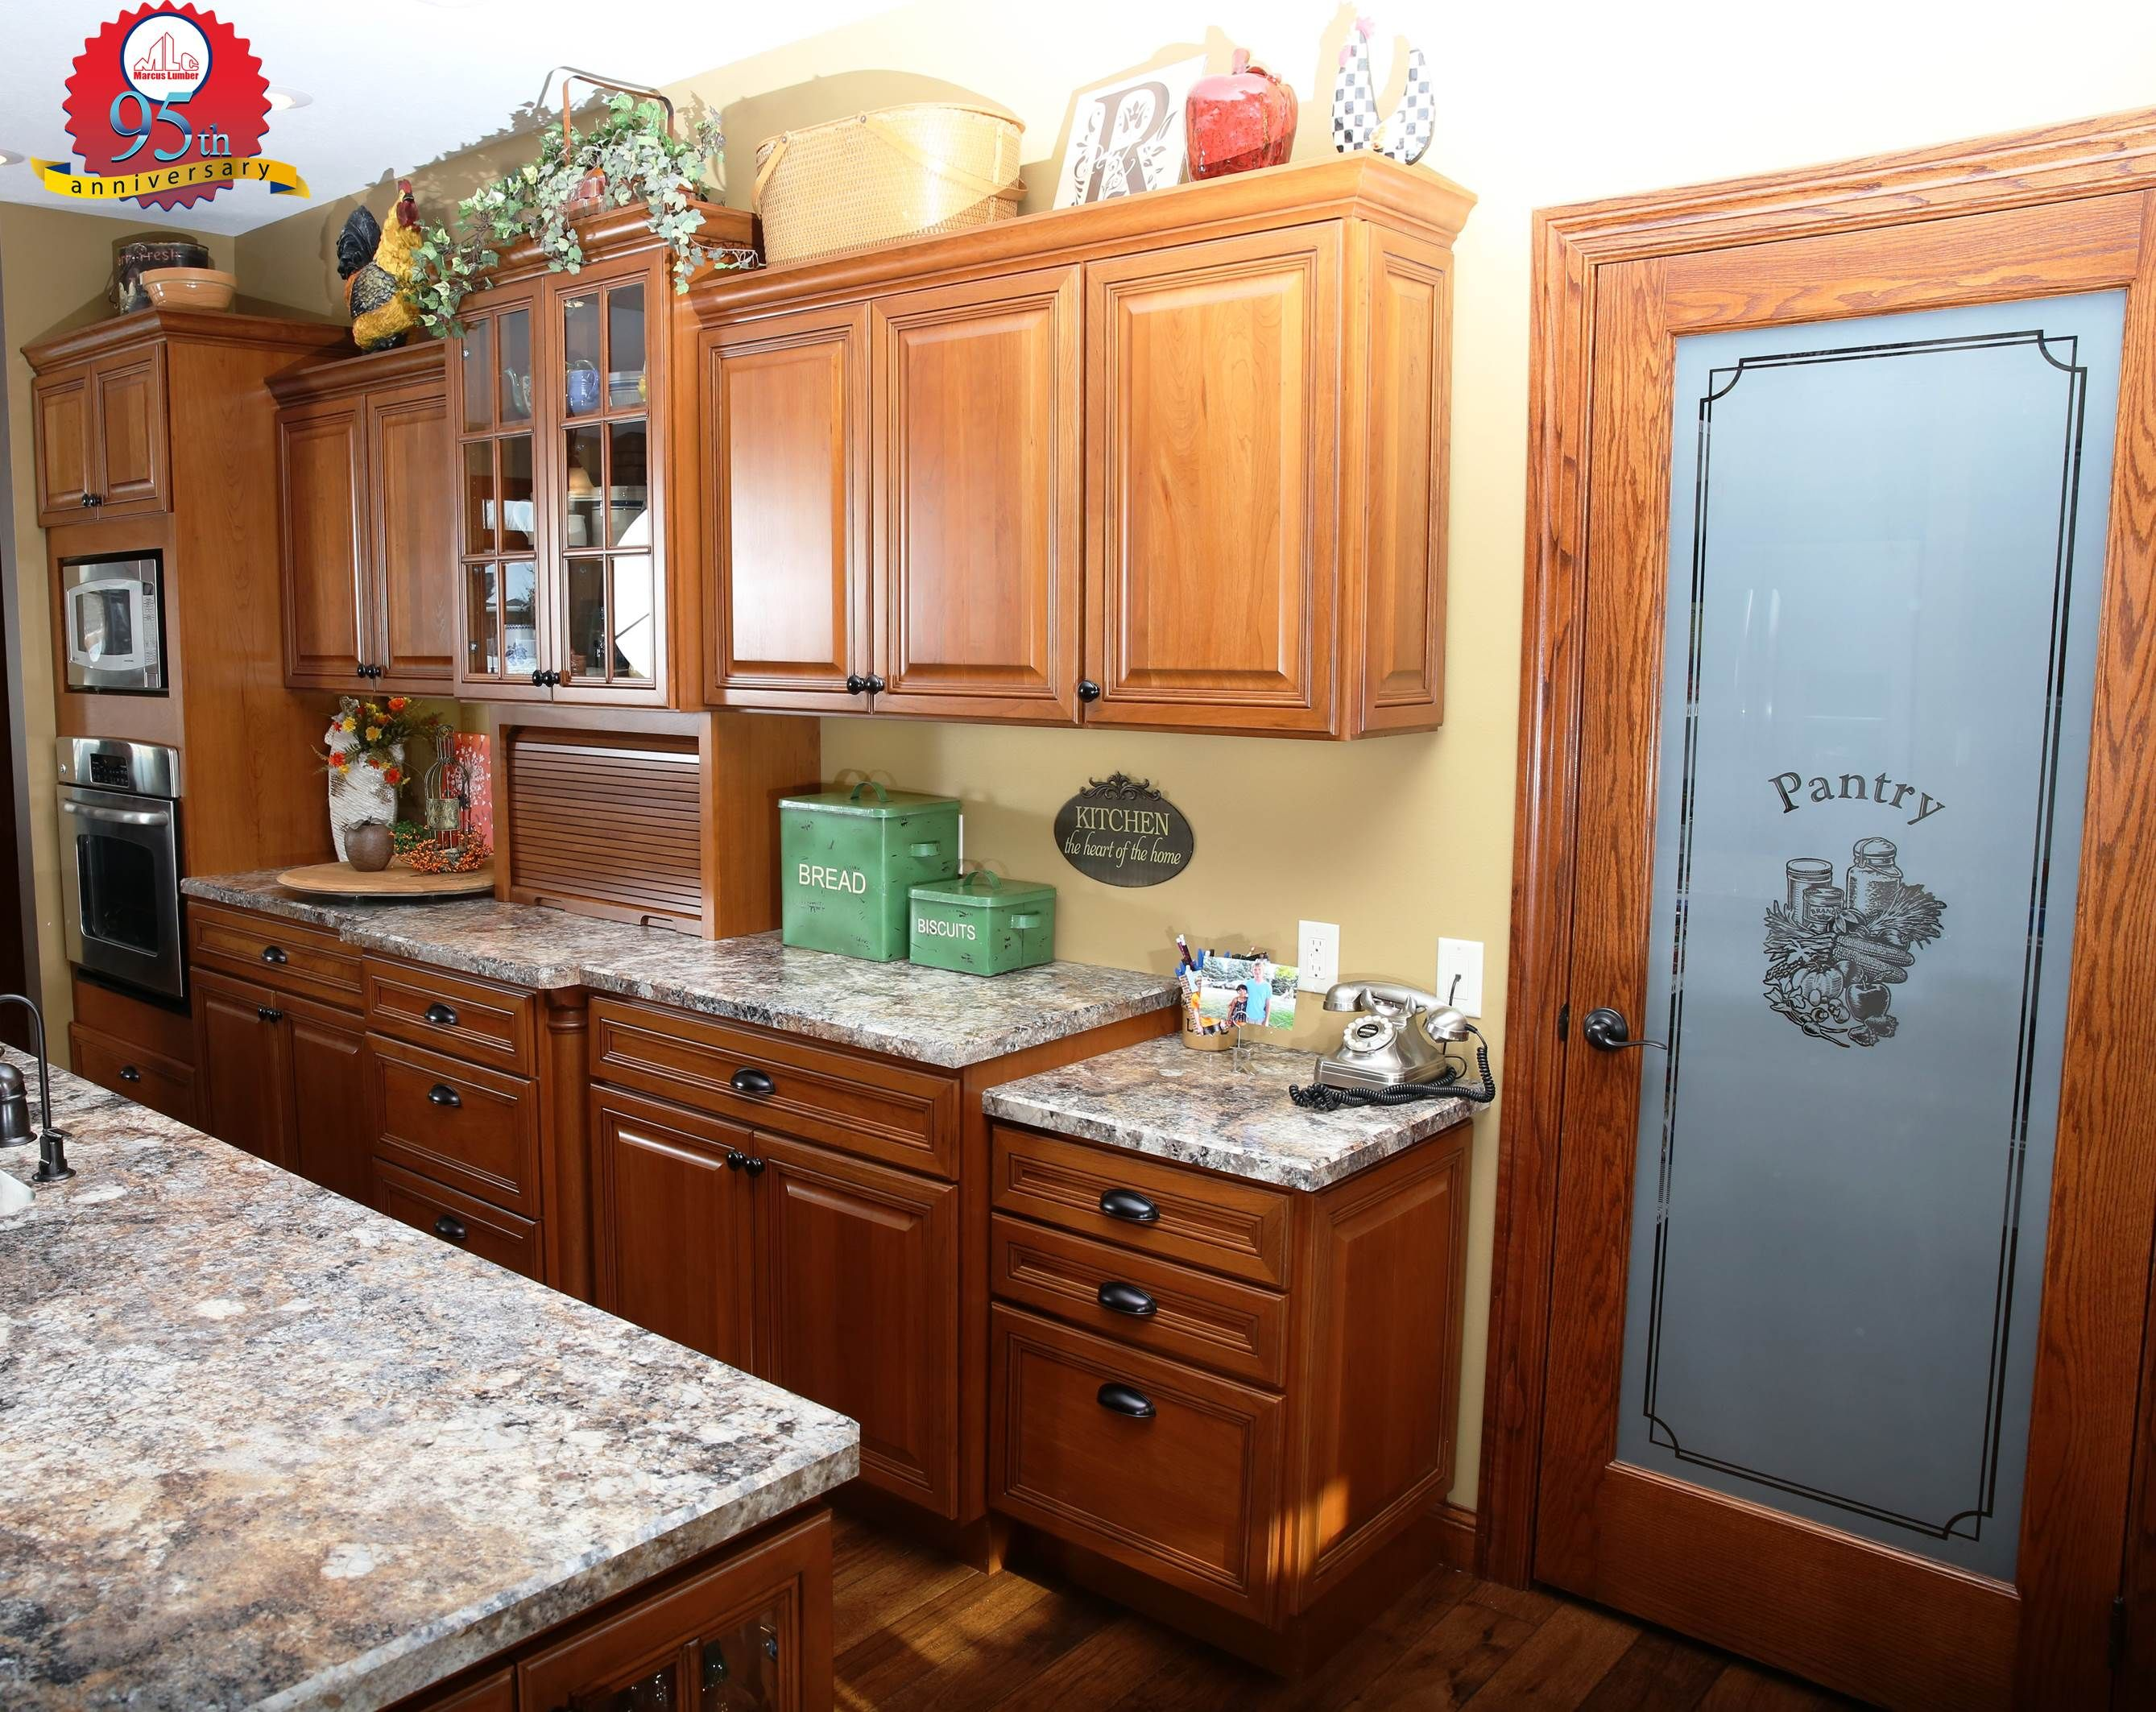 These antique mascarello bevel edge top countertops pliment the